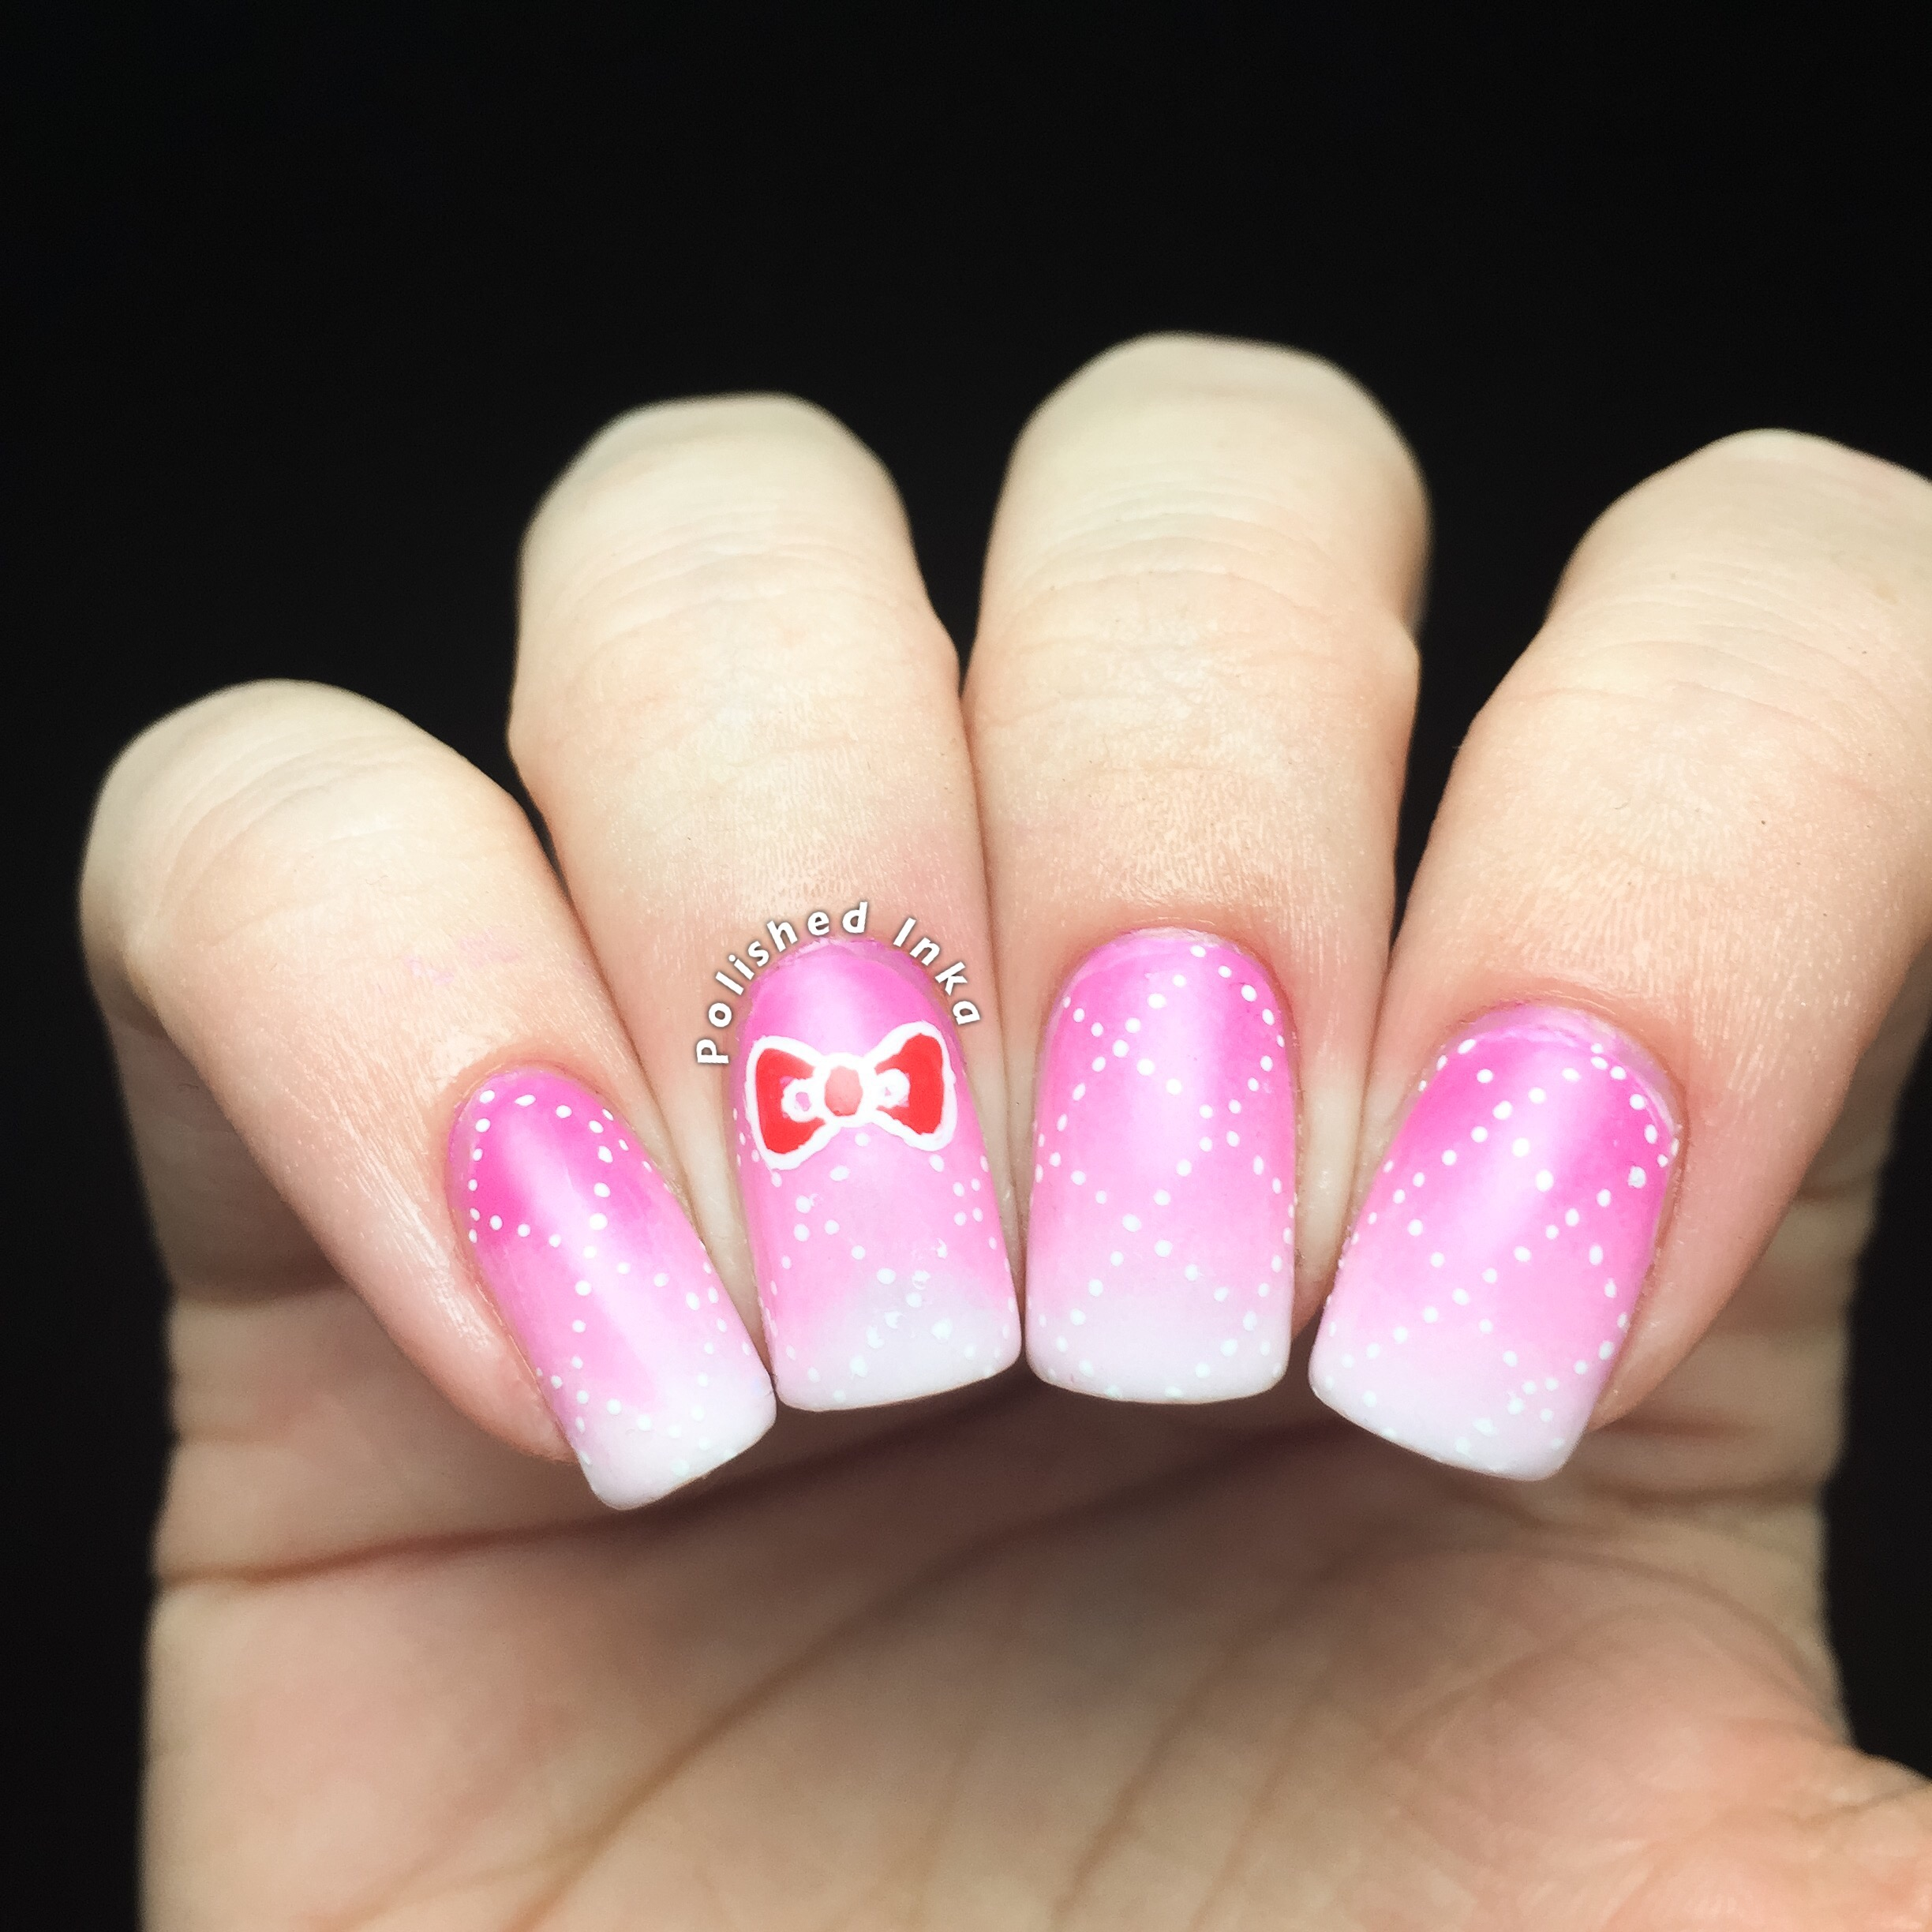 Polished Inka OPI Hello Kitty Cross Hatch Nail Art